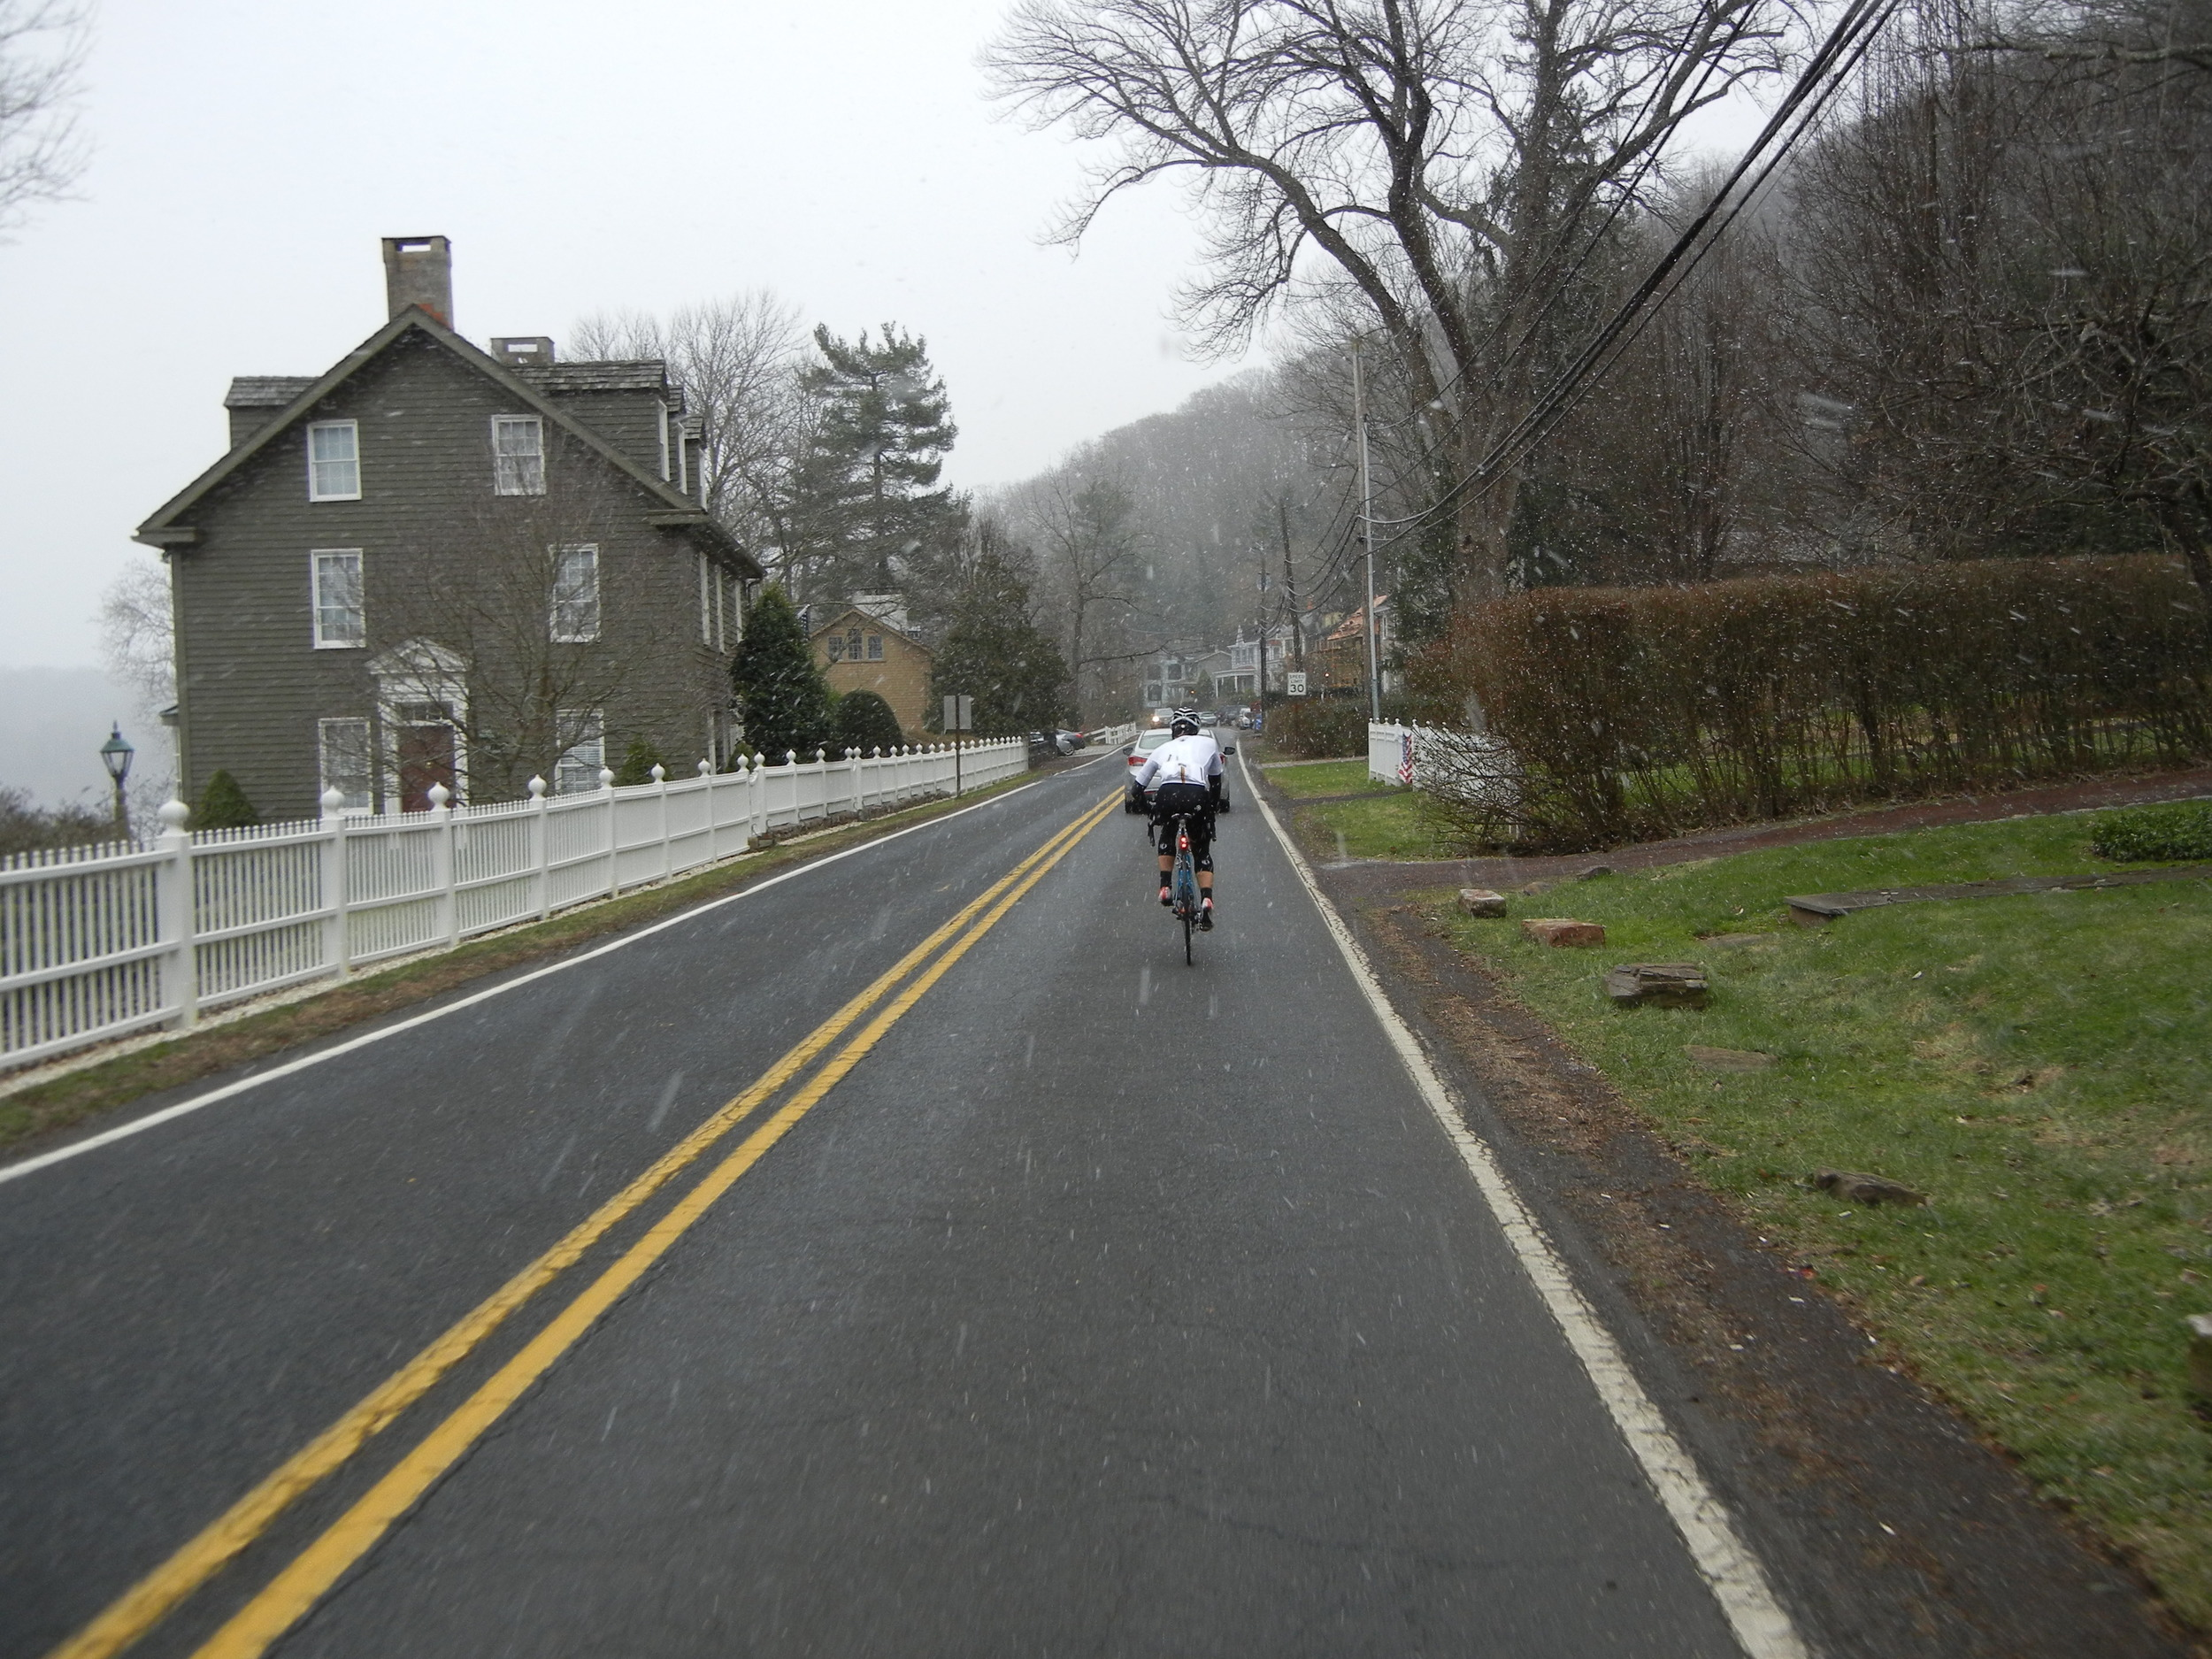 Cruising through Lumberville, PA, with the Delaware River to the left.